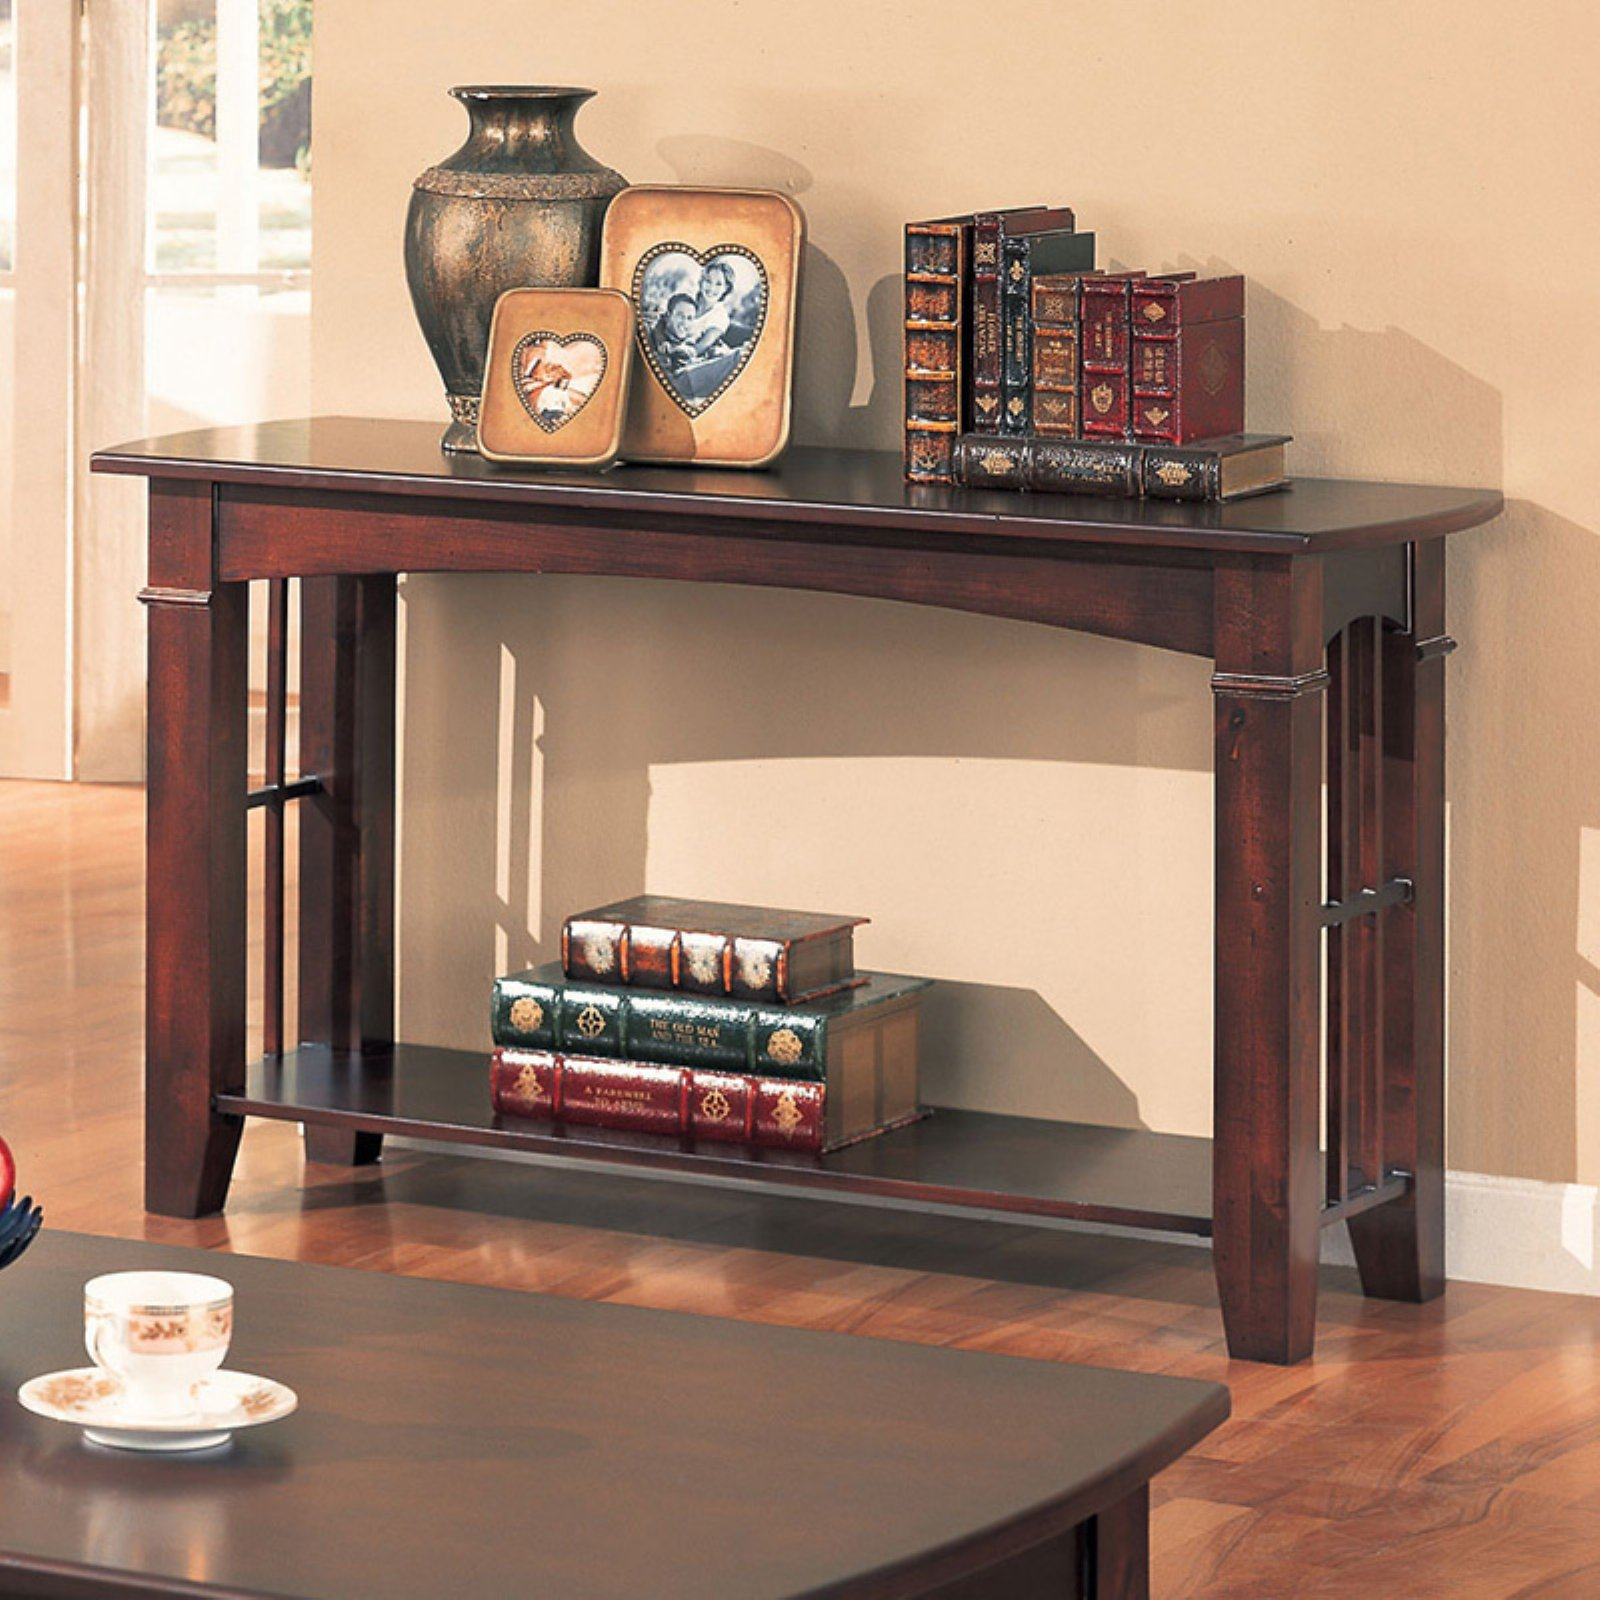 Coaster Furniture Cherry Finish Sofa Table by Coaster Furniture